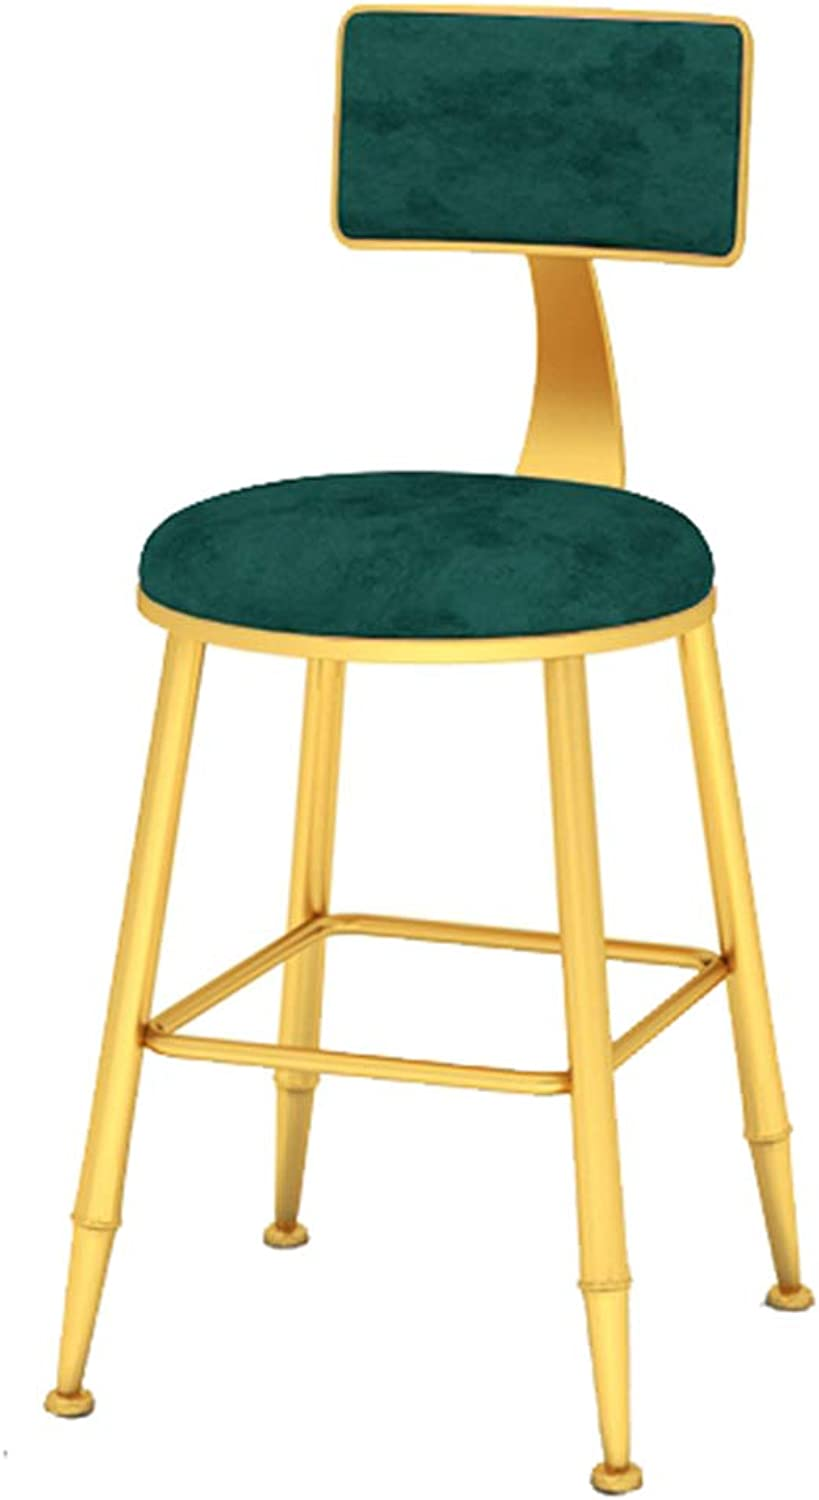 Minimalist Counter Bar Chairs Modern Breakfast Dining Chairs Round High Stools Upholstered Barstools with Backrest Bar Stools for Pub Kitchen Home Indoor Cafe